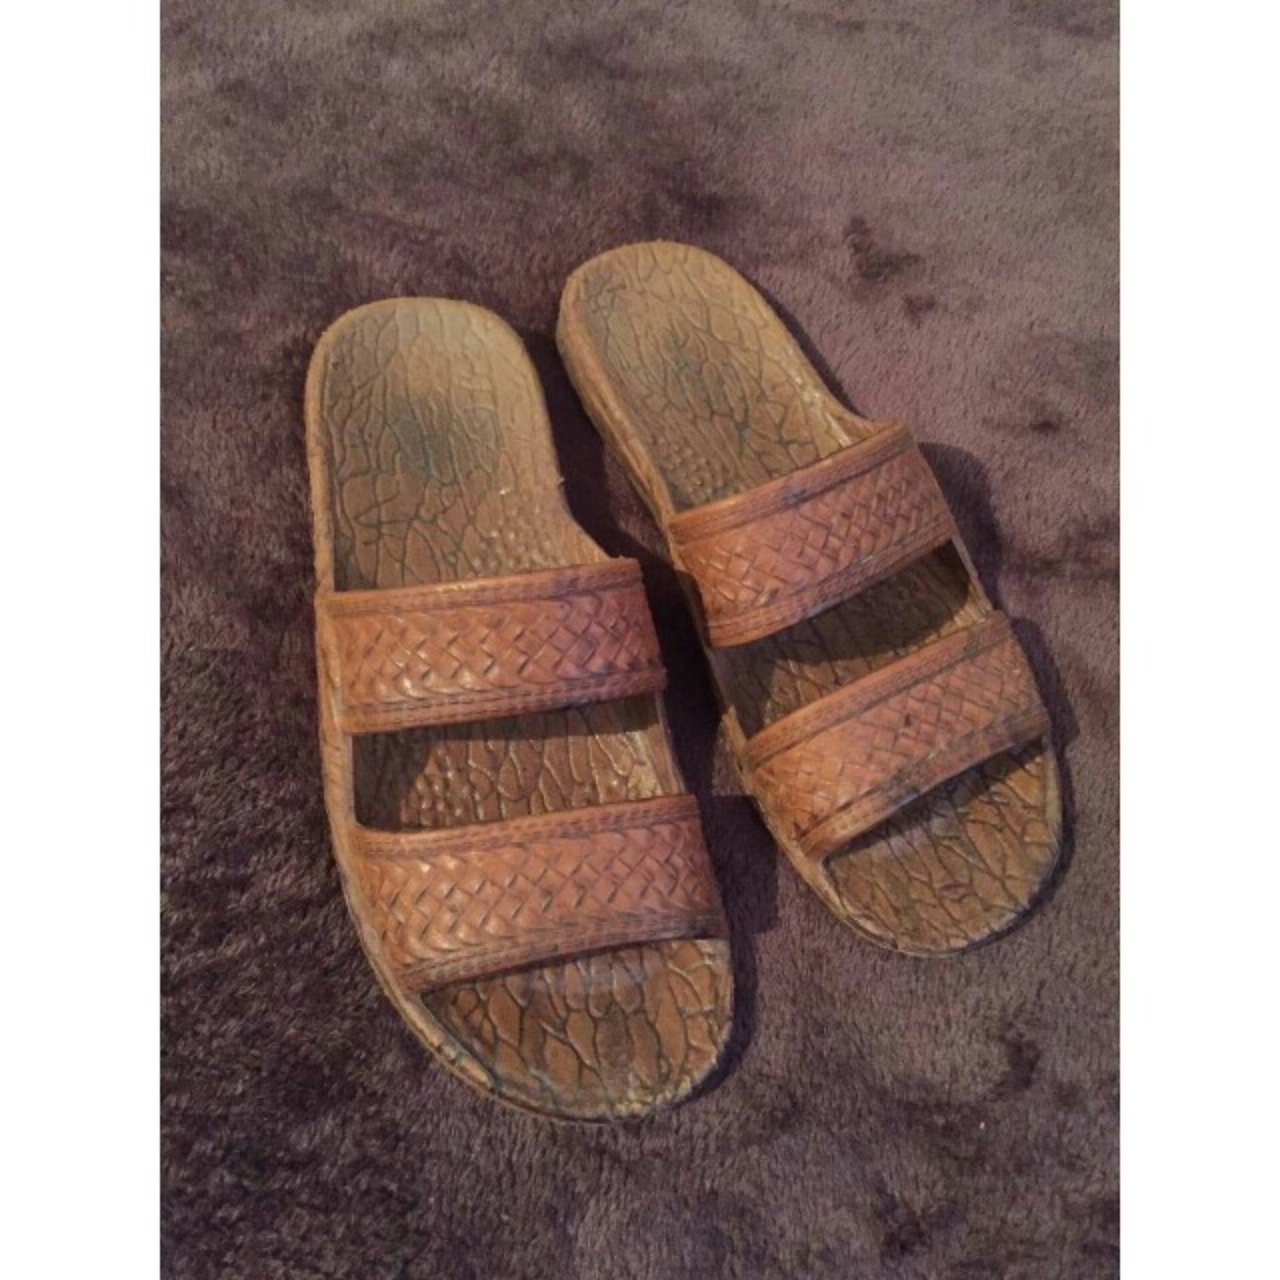 Pali Hawaii sandals. Size 7 but can fit up to an 8. Selling - Depop 89f22a81e